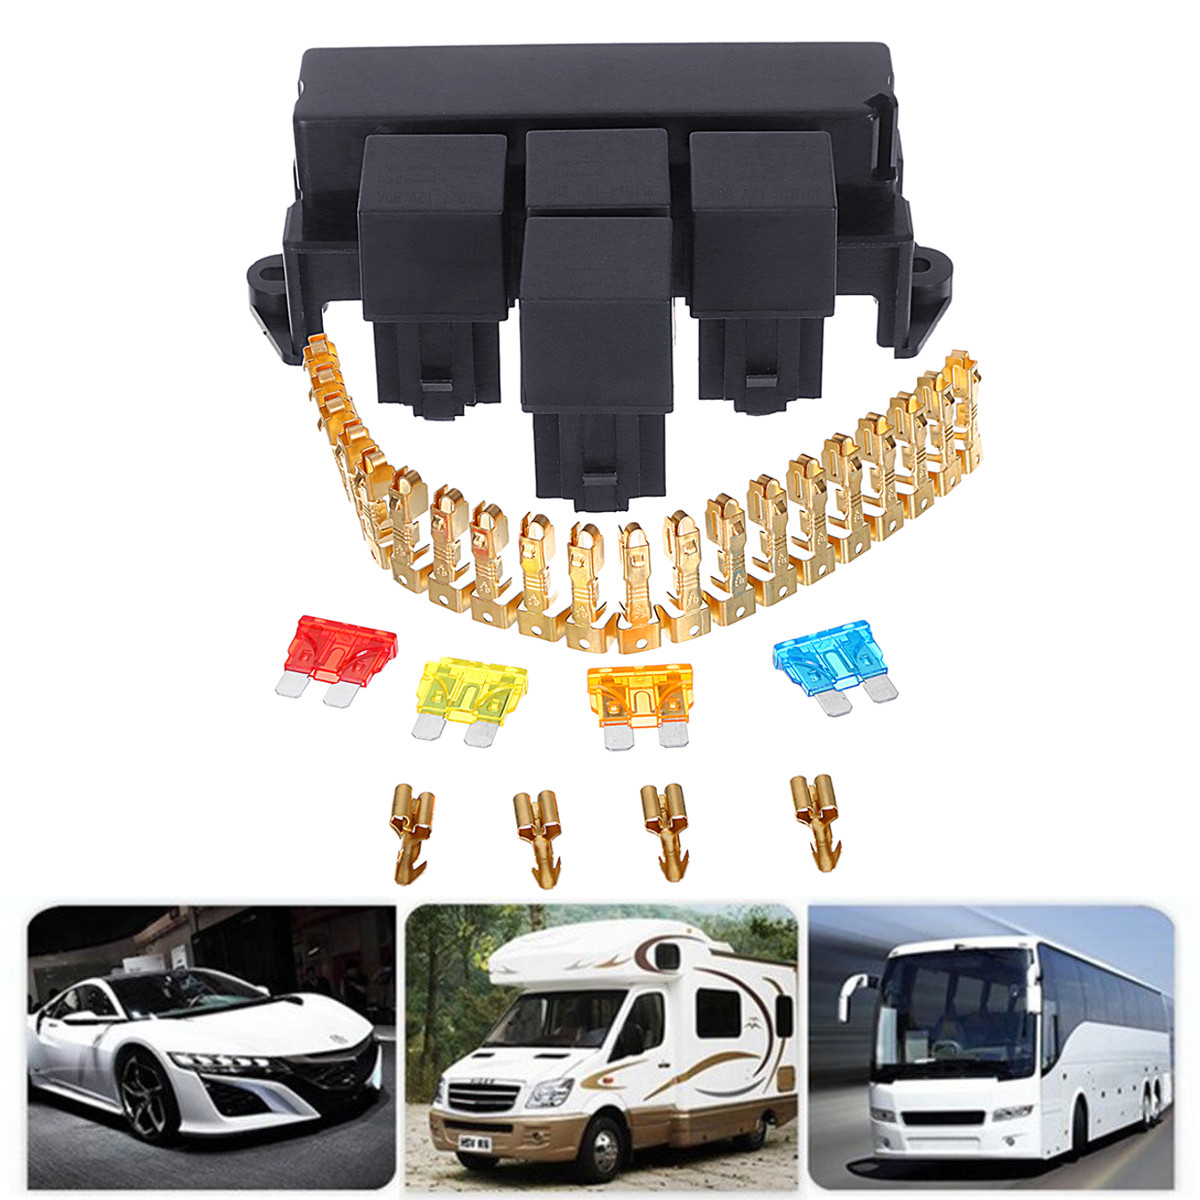 Dc 12v 10ways Automotive Replacement Blade Fuse Box Car